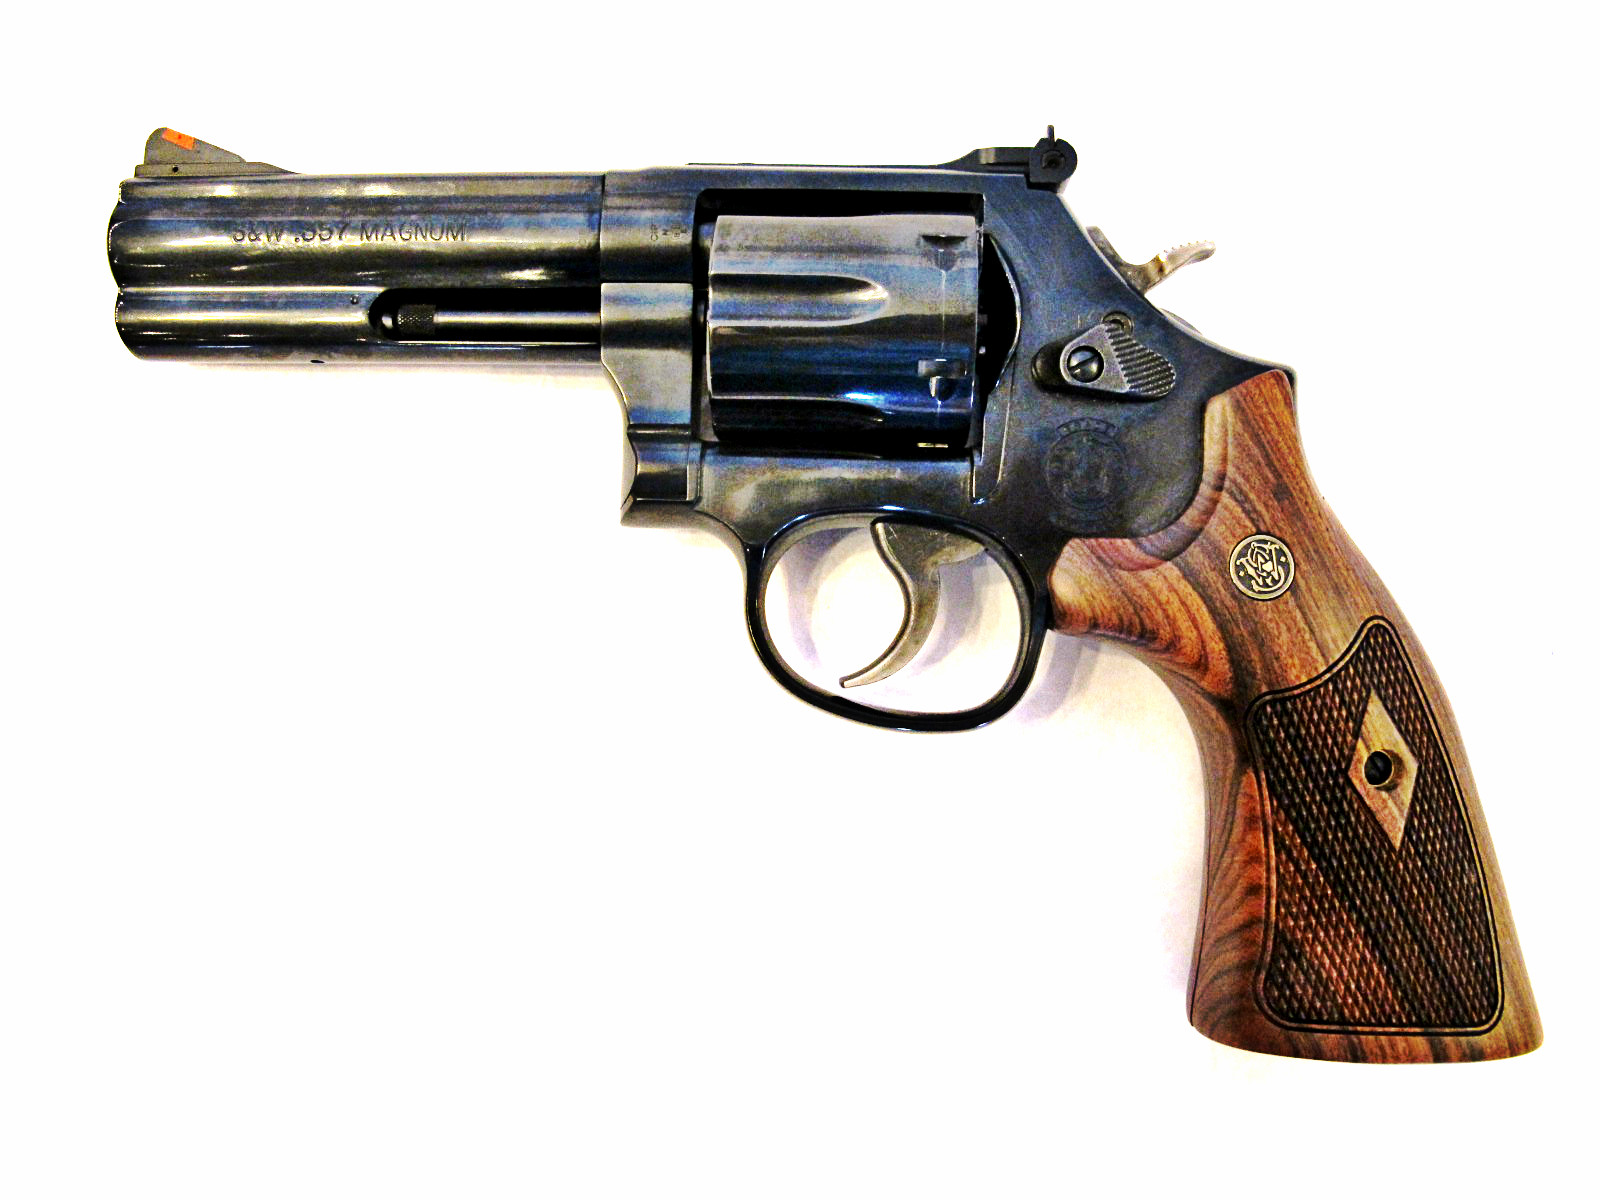 Smith & Wesson model 586